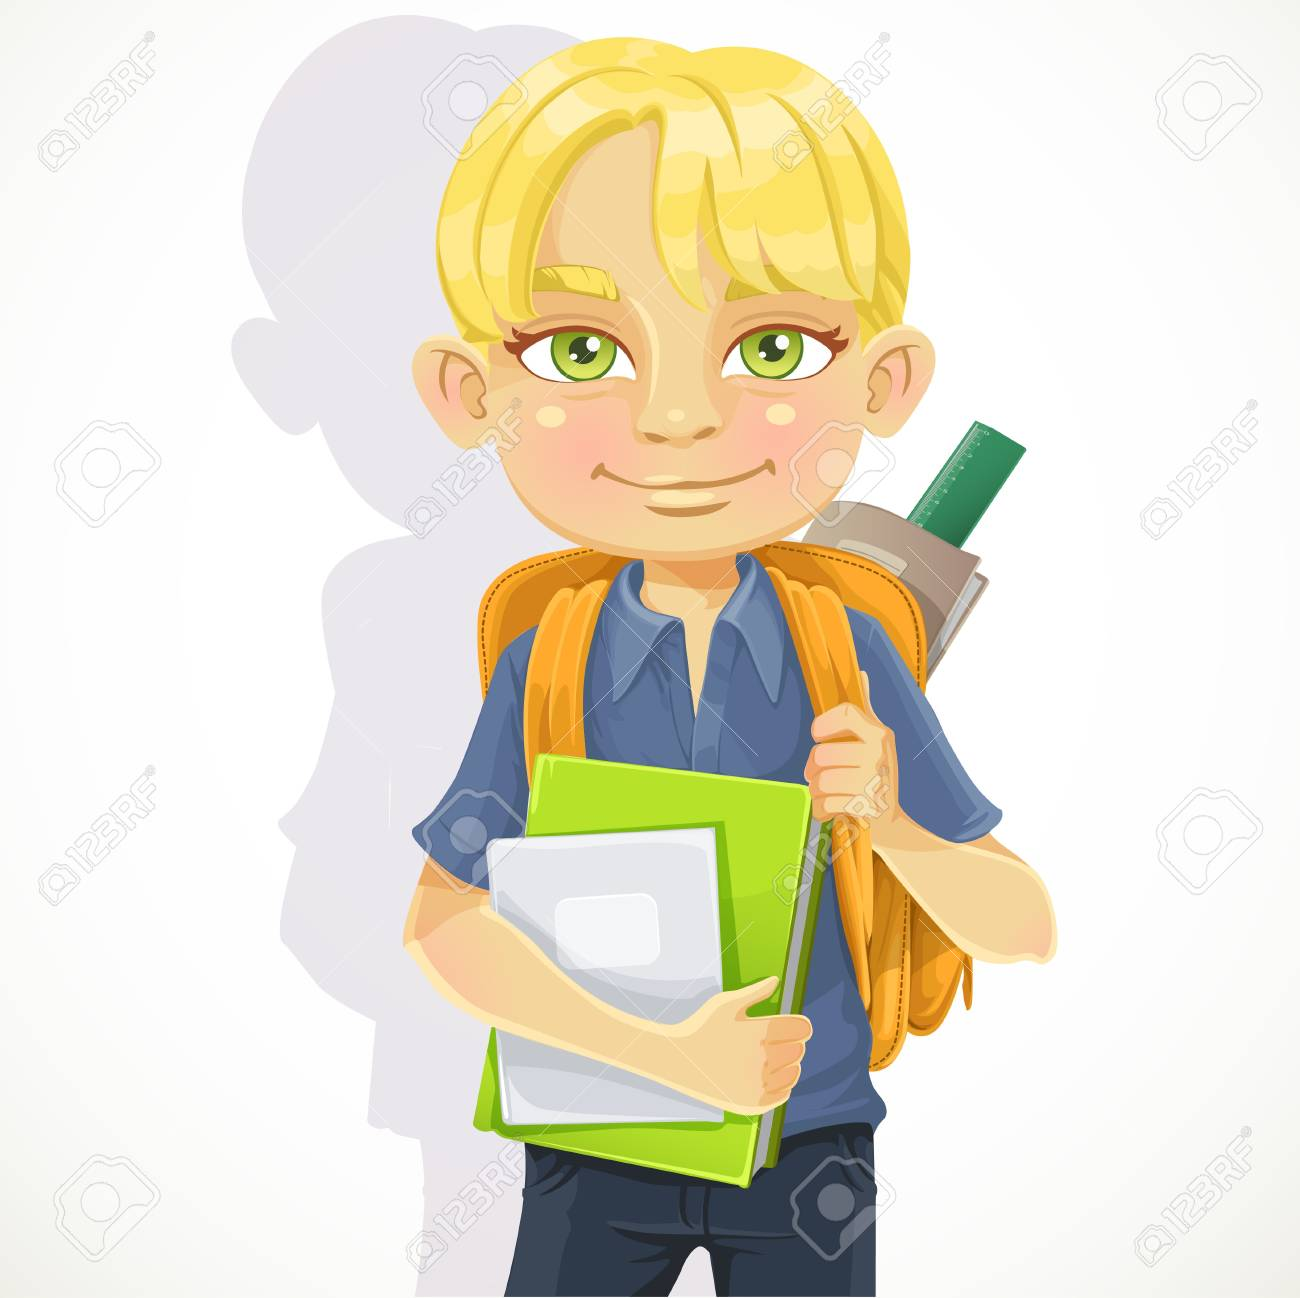 Cute schoolboy with textbooks and notebooks backpack Stock Vector - 18499509